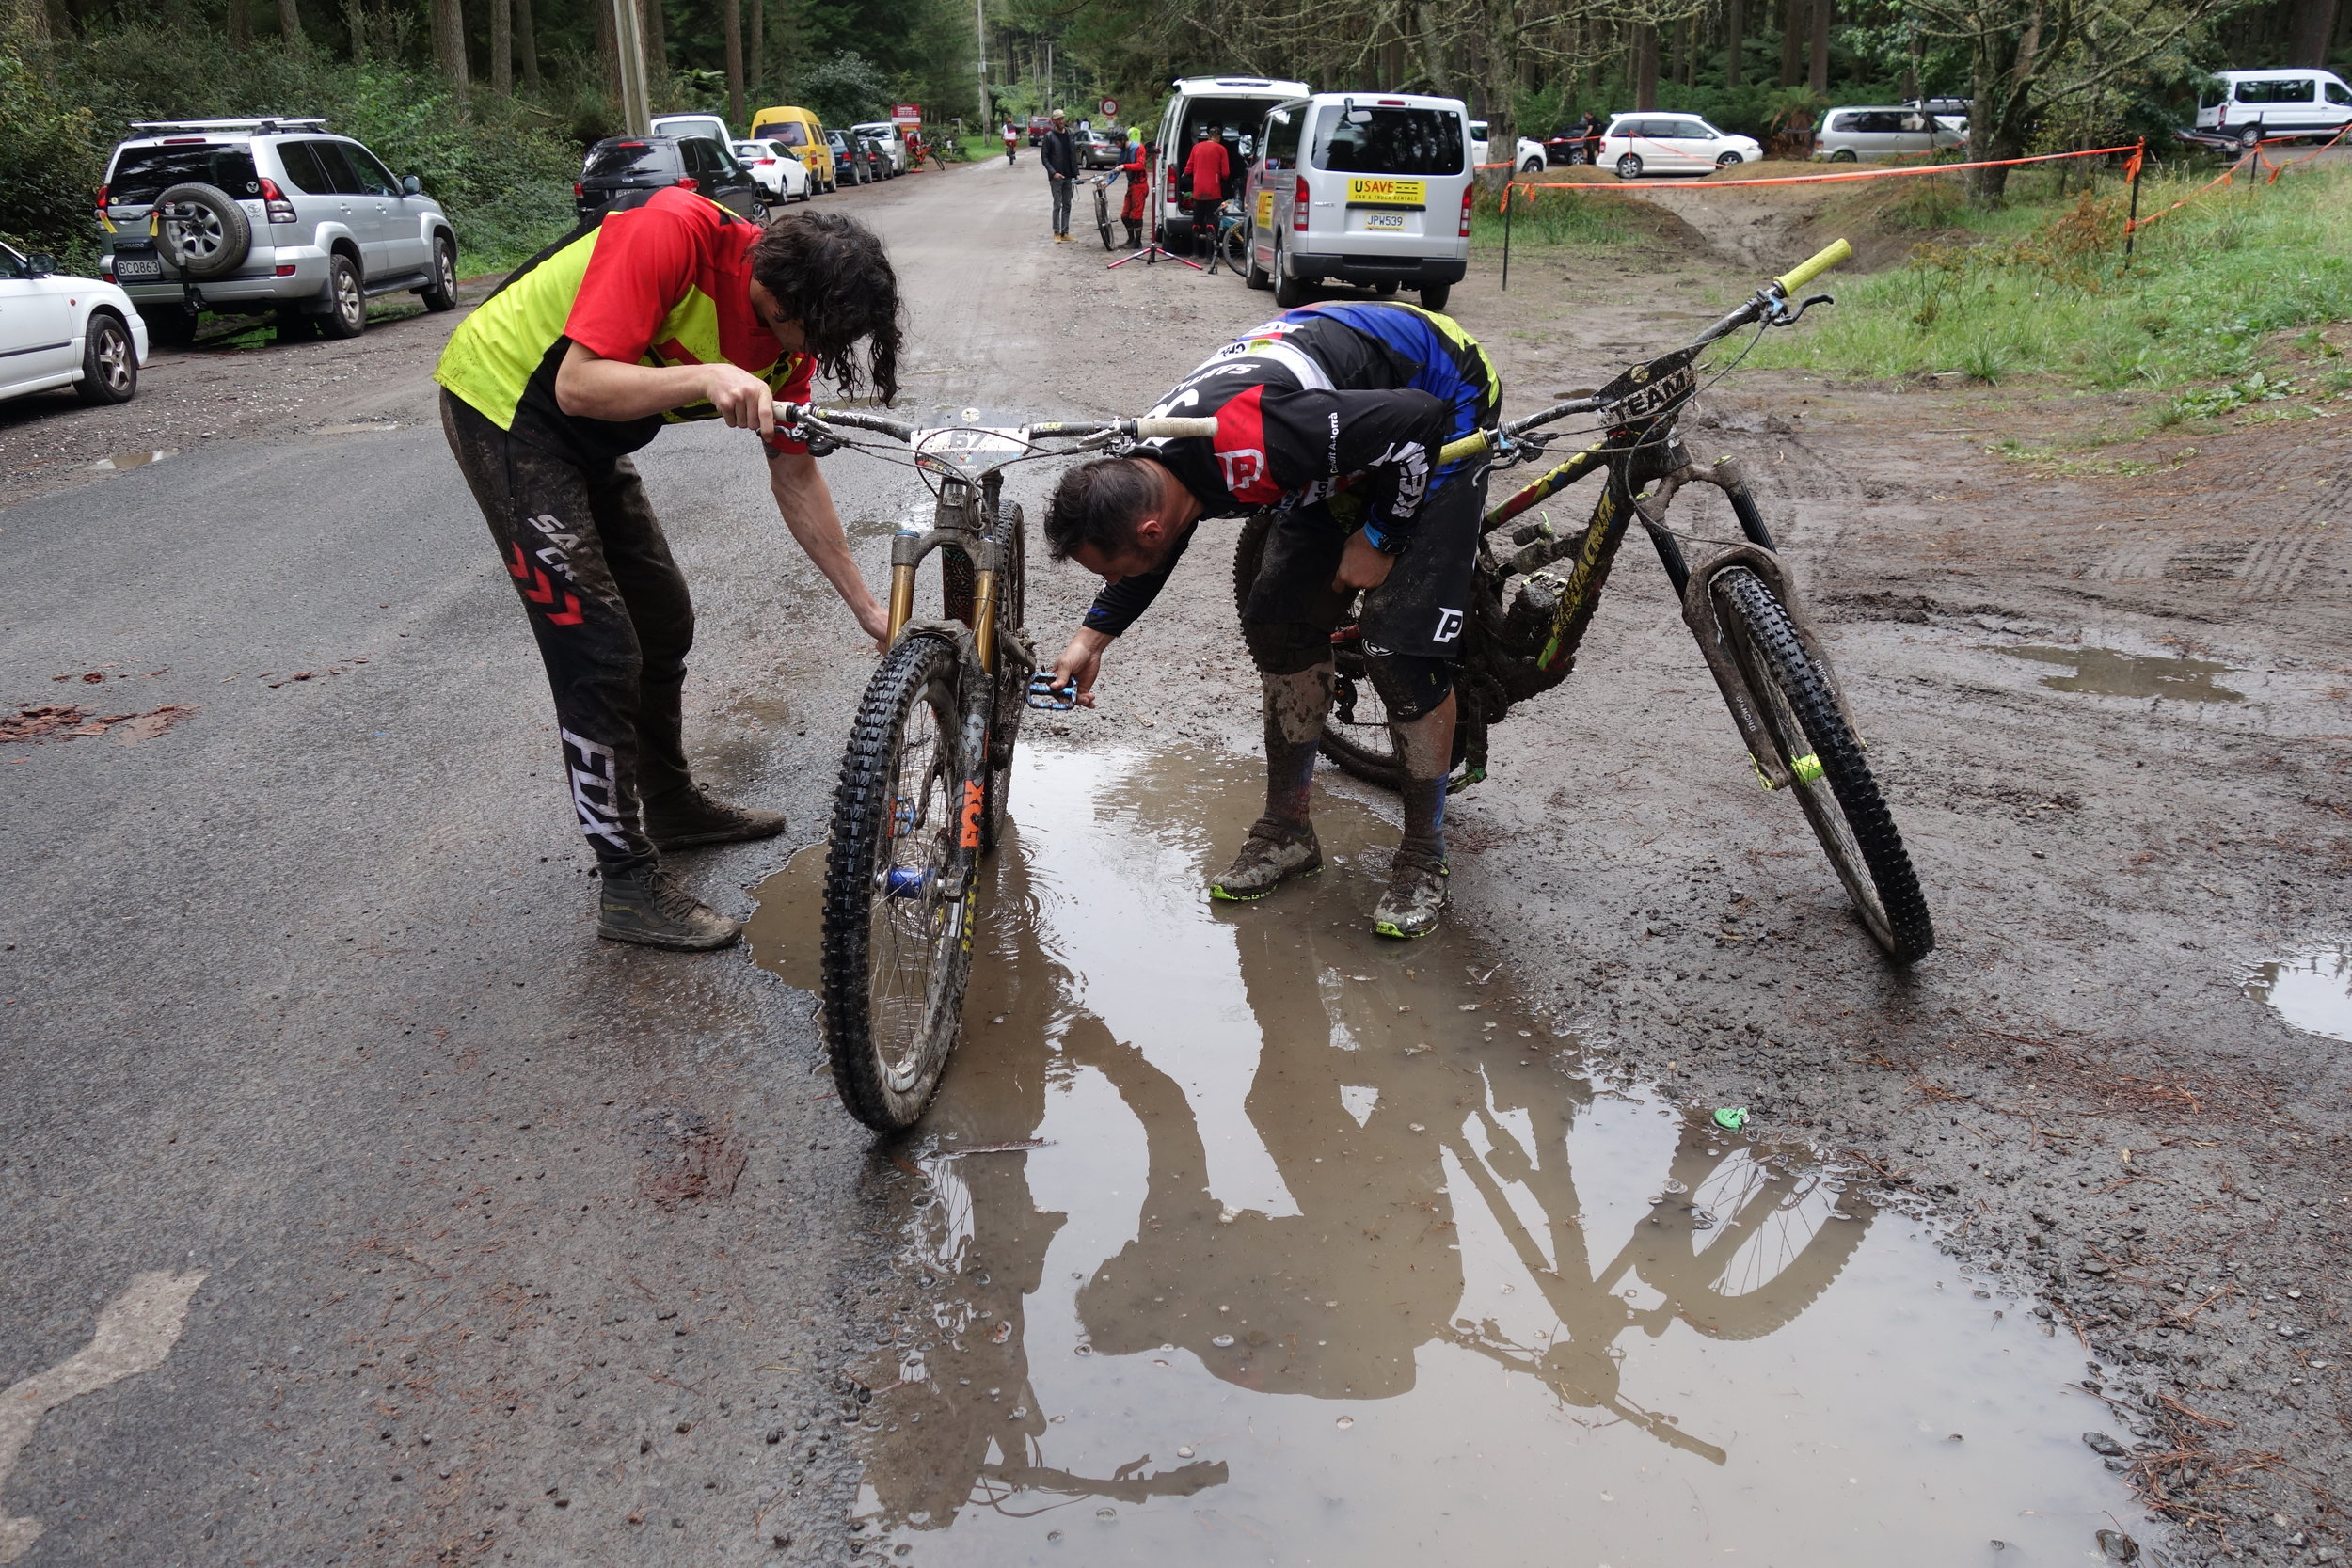 It's looking pretty muddy from last nights rain as we spy Cedric Cracia and Josh Bryceland washing their bikes in a puddle. I've only been here 5 minutes and i've bumped into three legends. Crankworx huh! Awesome.